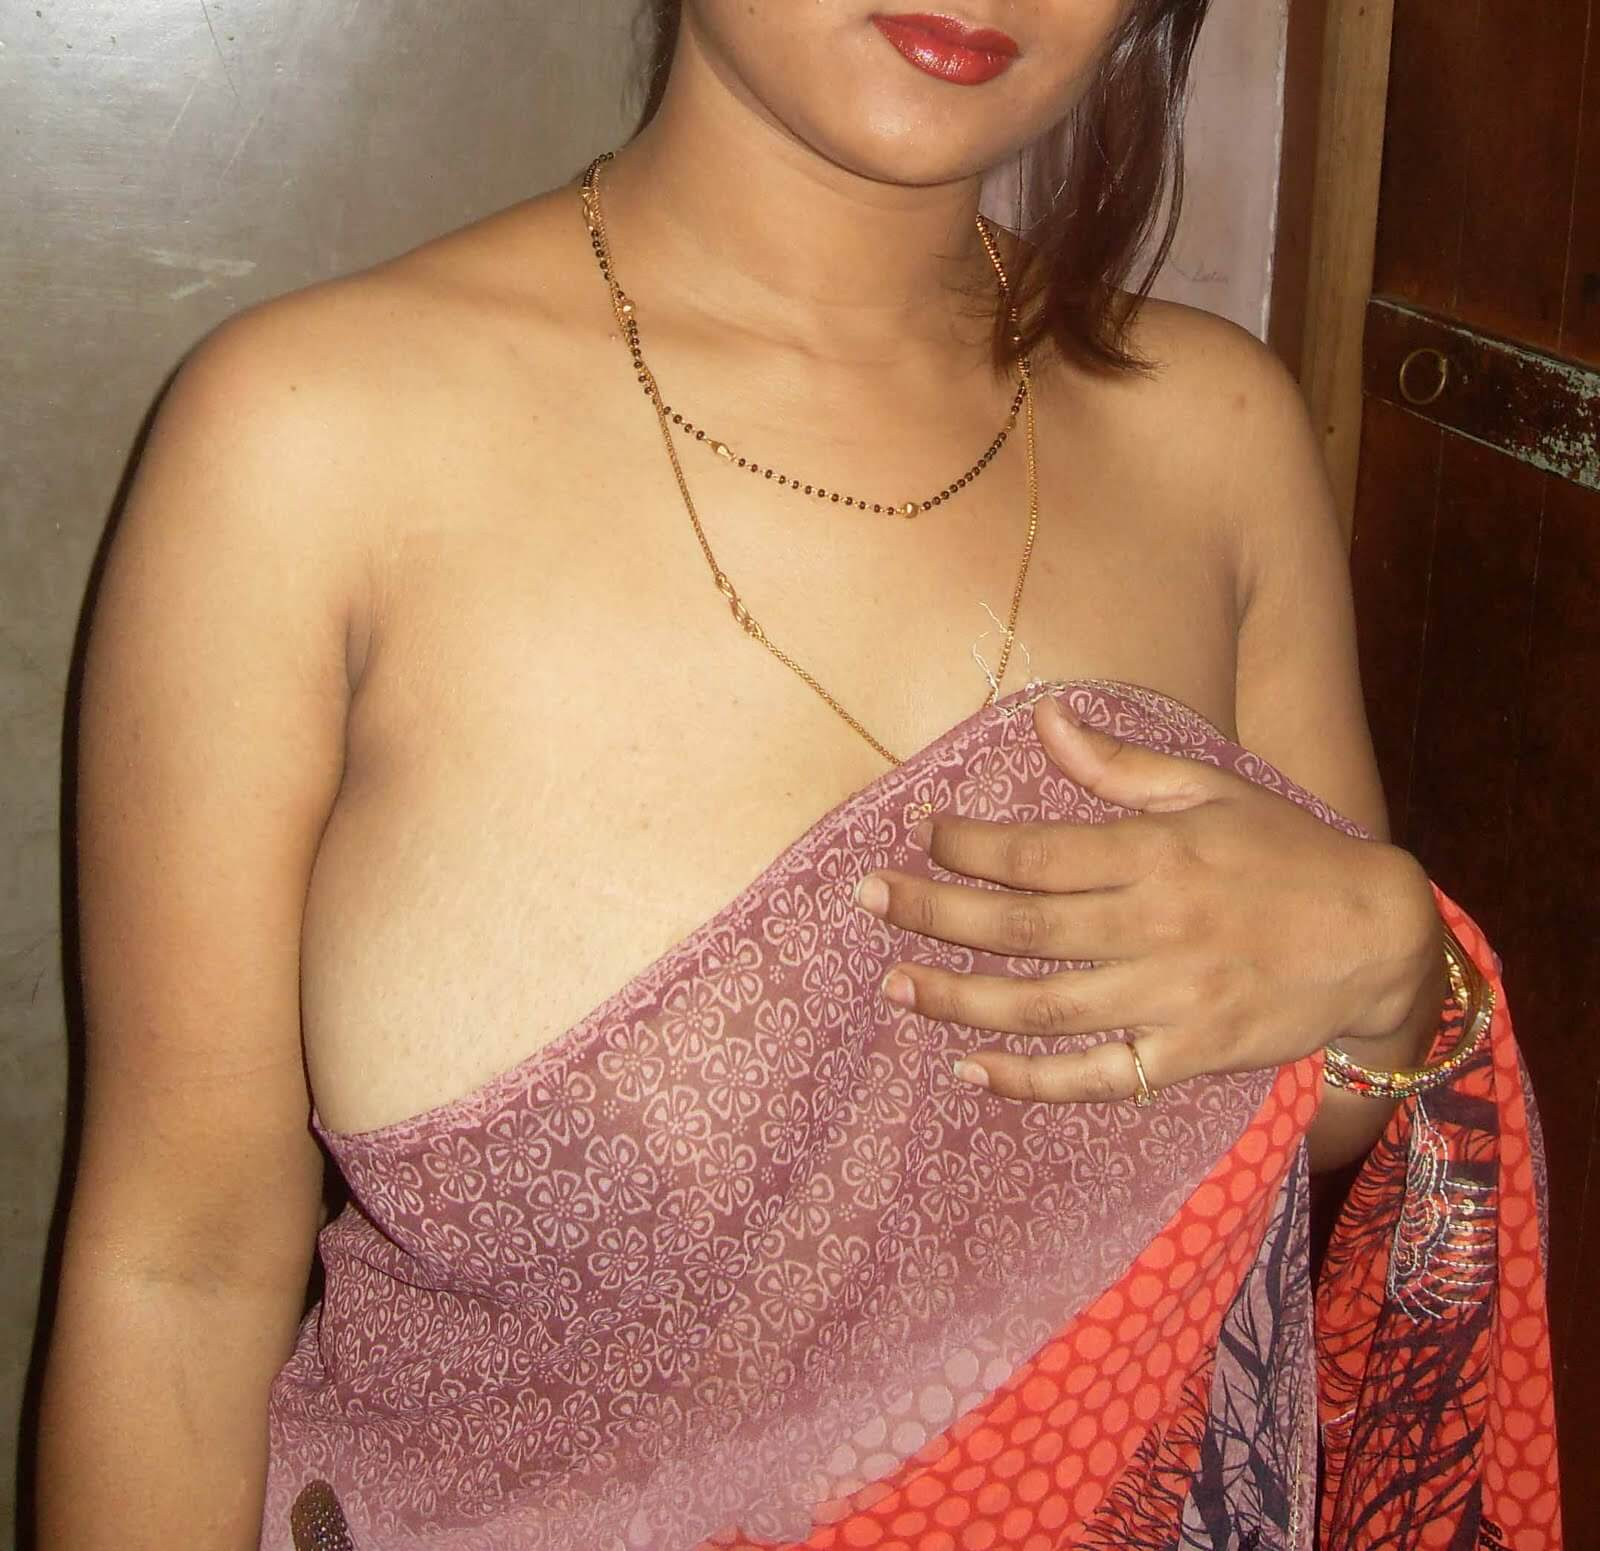 Indian desi bhabhi wearing transparent blouse and showing bra